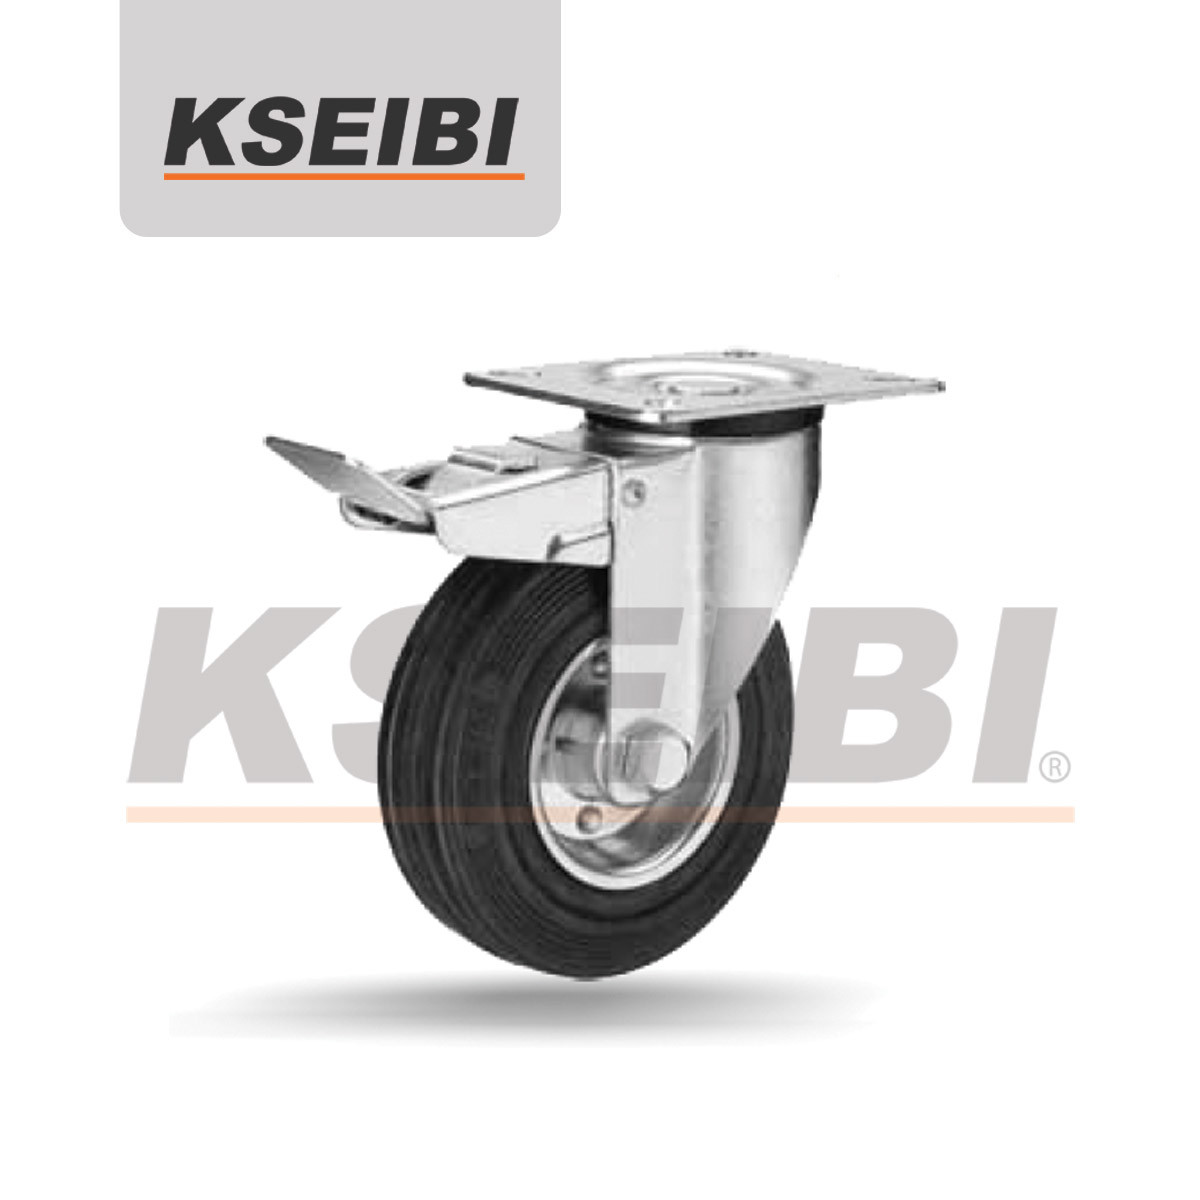 European Style Swivel Kseibi Caster for Trolley